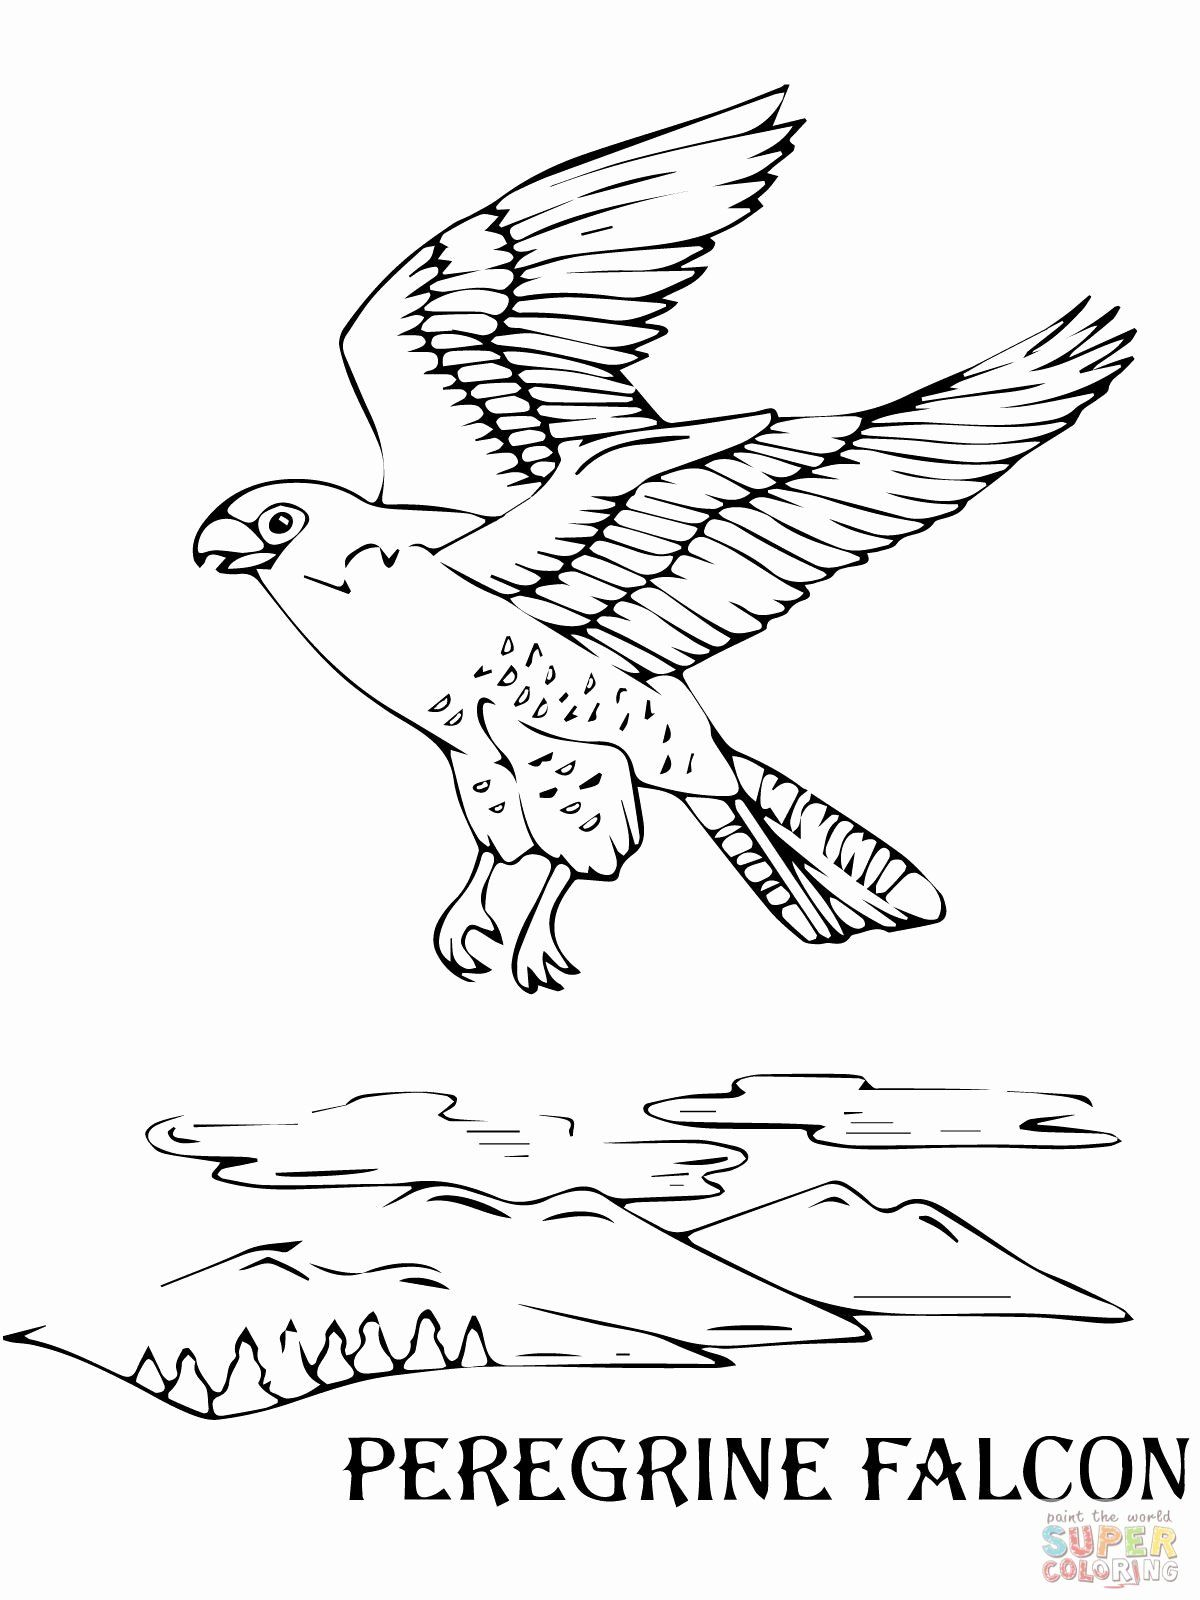 Peregrine Falcon Coloring Page Awesome Flying Peregrine Falcon Coloring Line Coloring Pages Peregrine Falcon Bird Coloring Pages